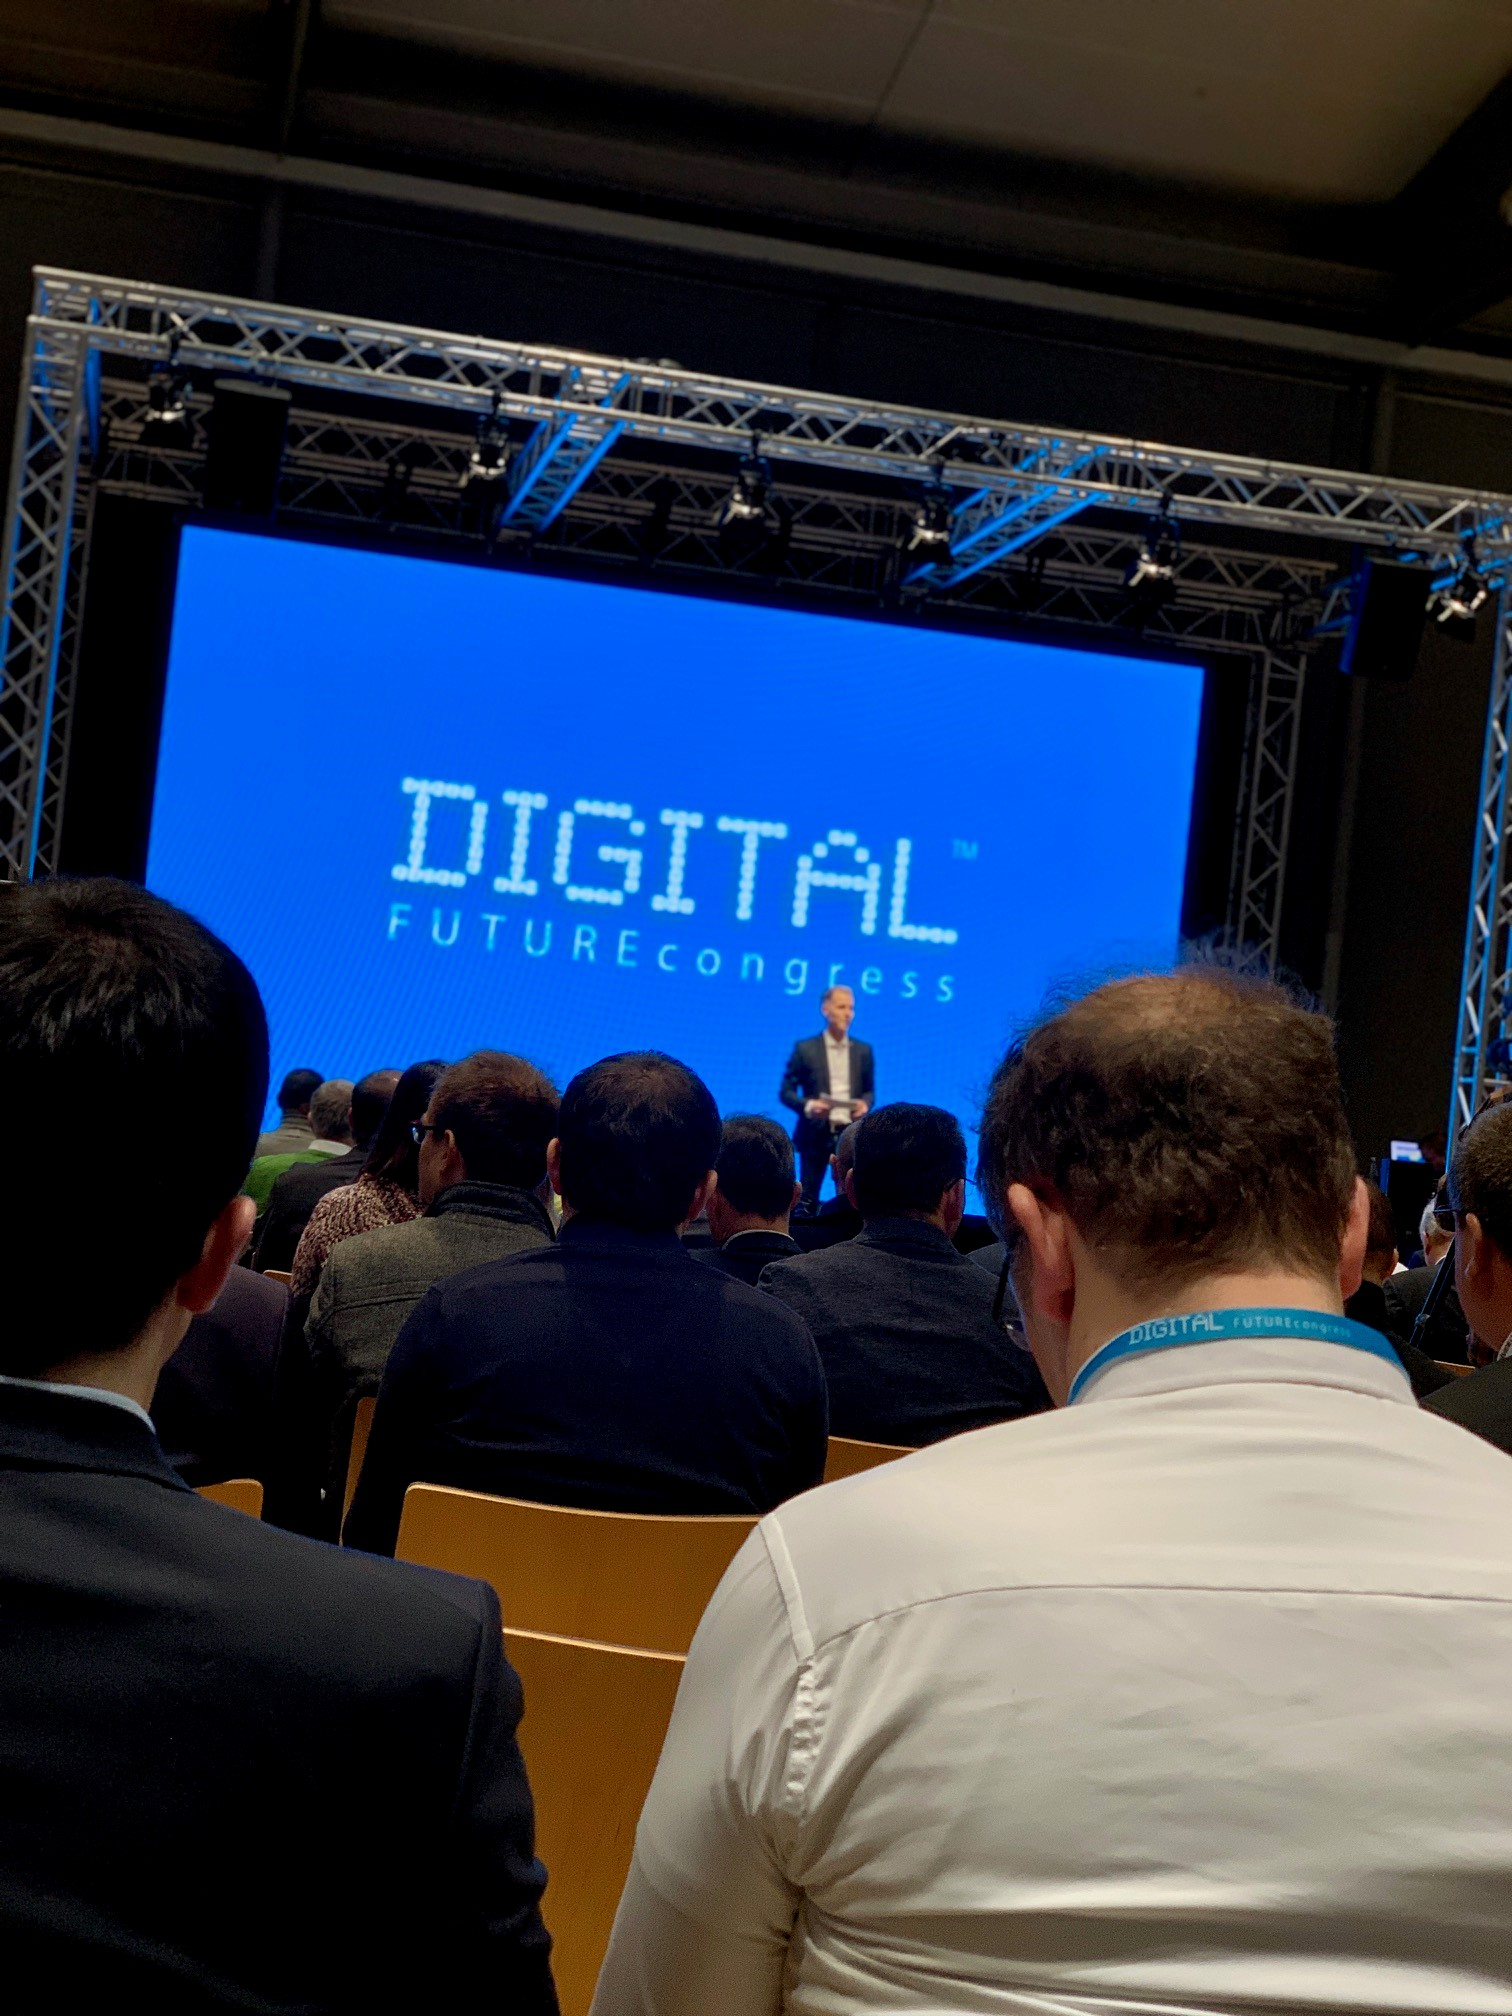 VISUALYS auf dem DIGITAL FUTUREcongress in Frankfurt